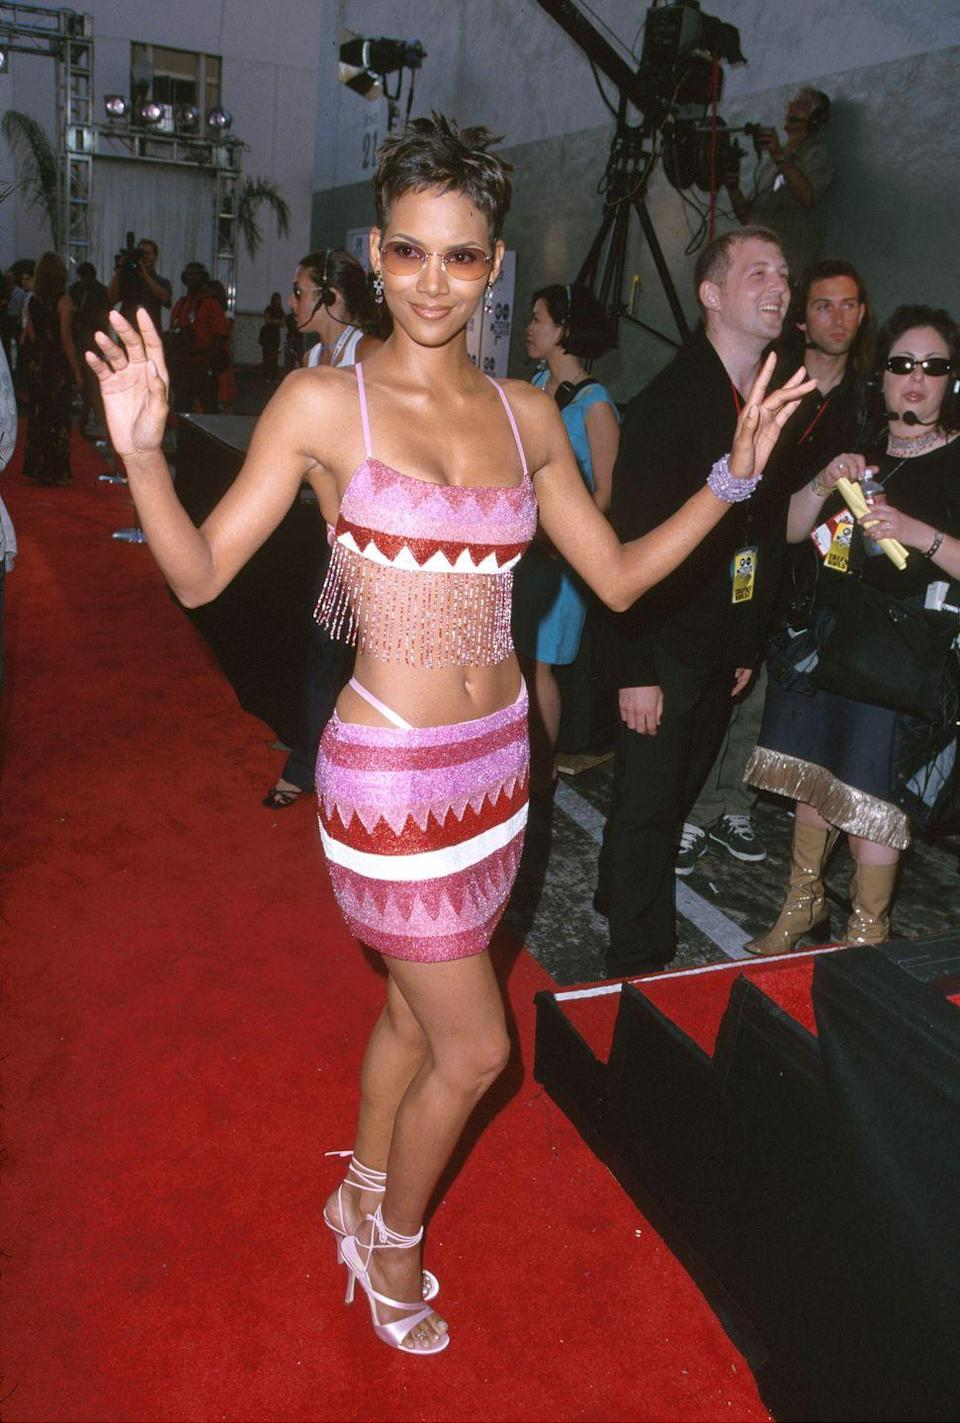 <p>The 2000s became less about a certain style and more about fabrics and patterns. Cotton, jersey, and knits had big moments in the new millennium, as did bold patterns and midriff-baring silhouettes.</p>